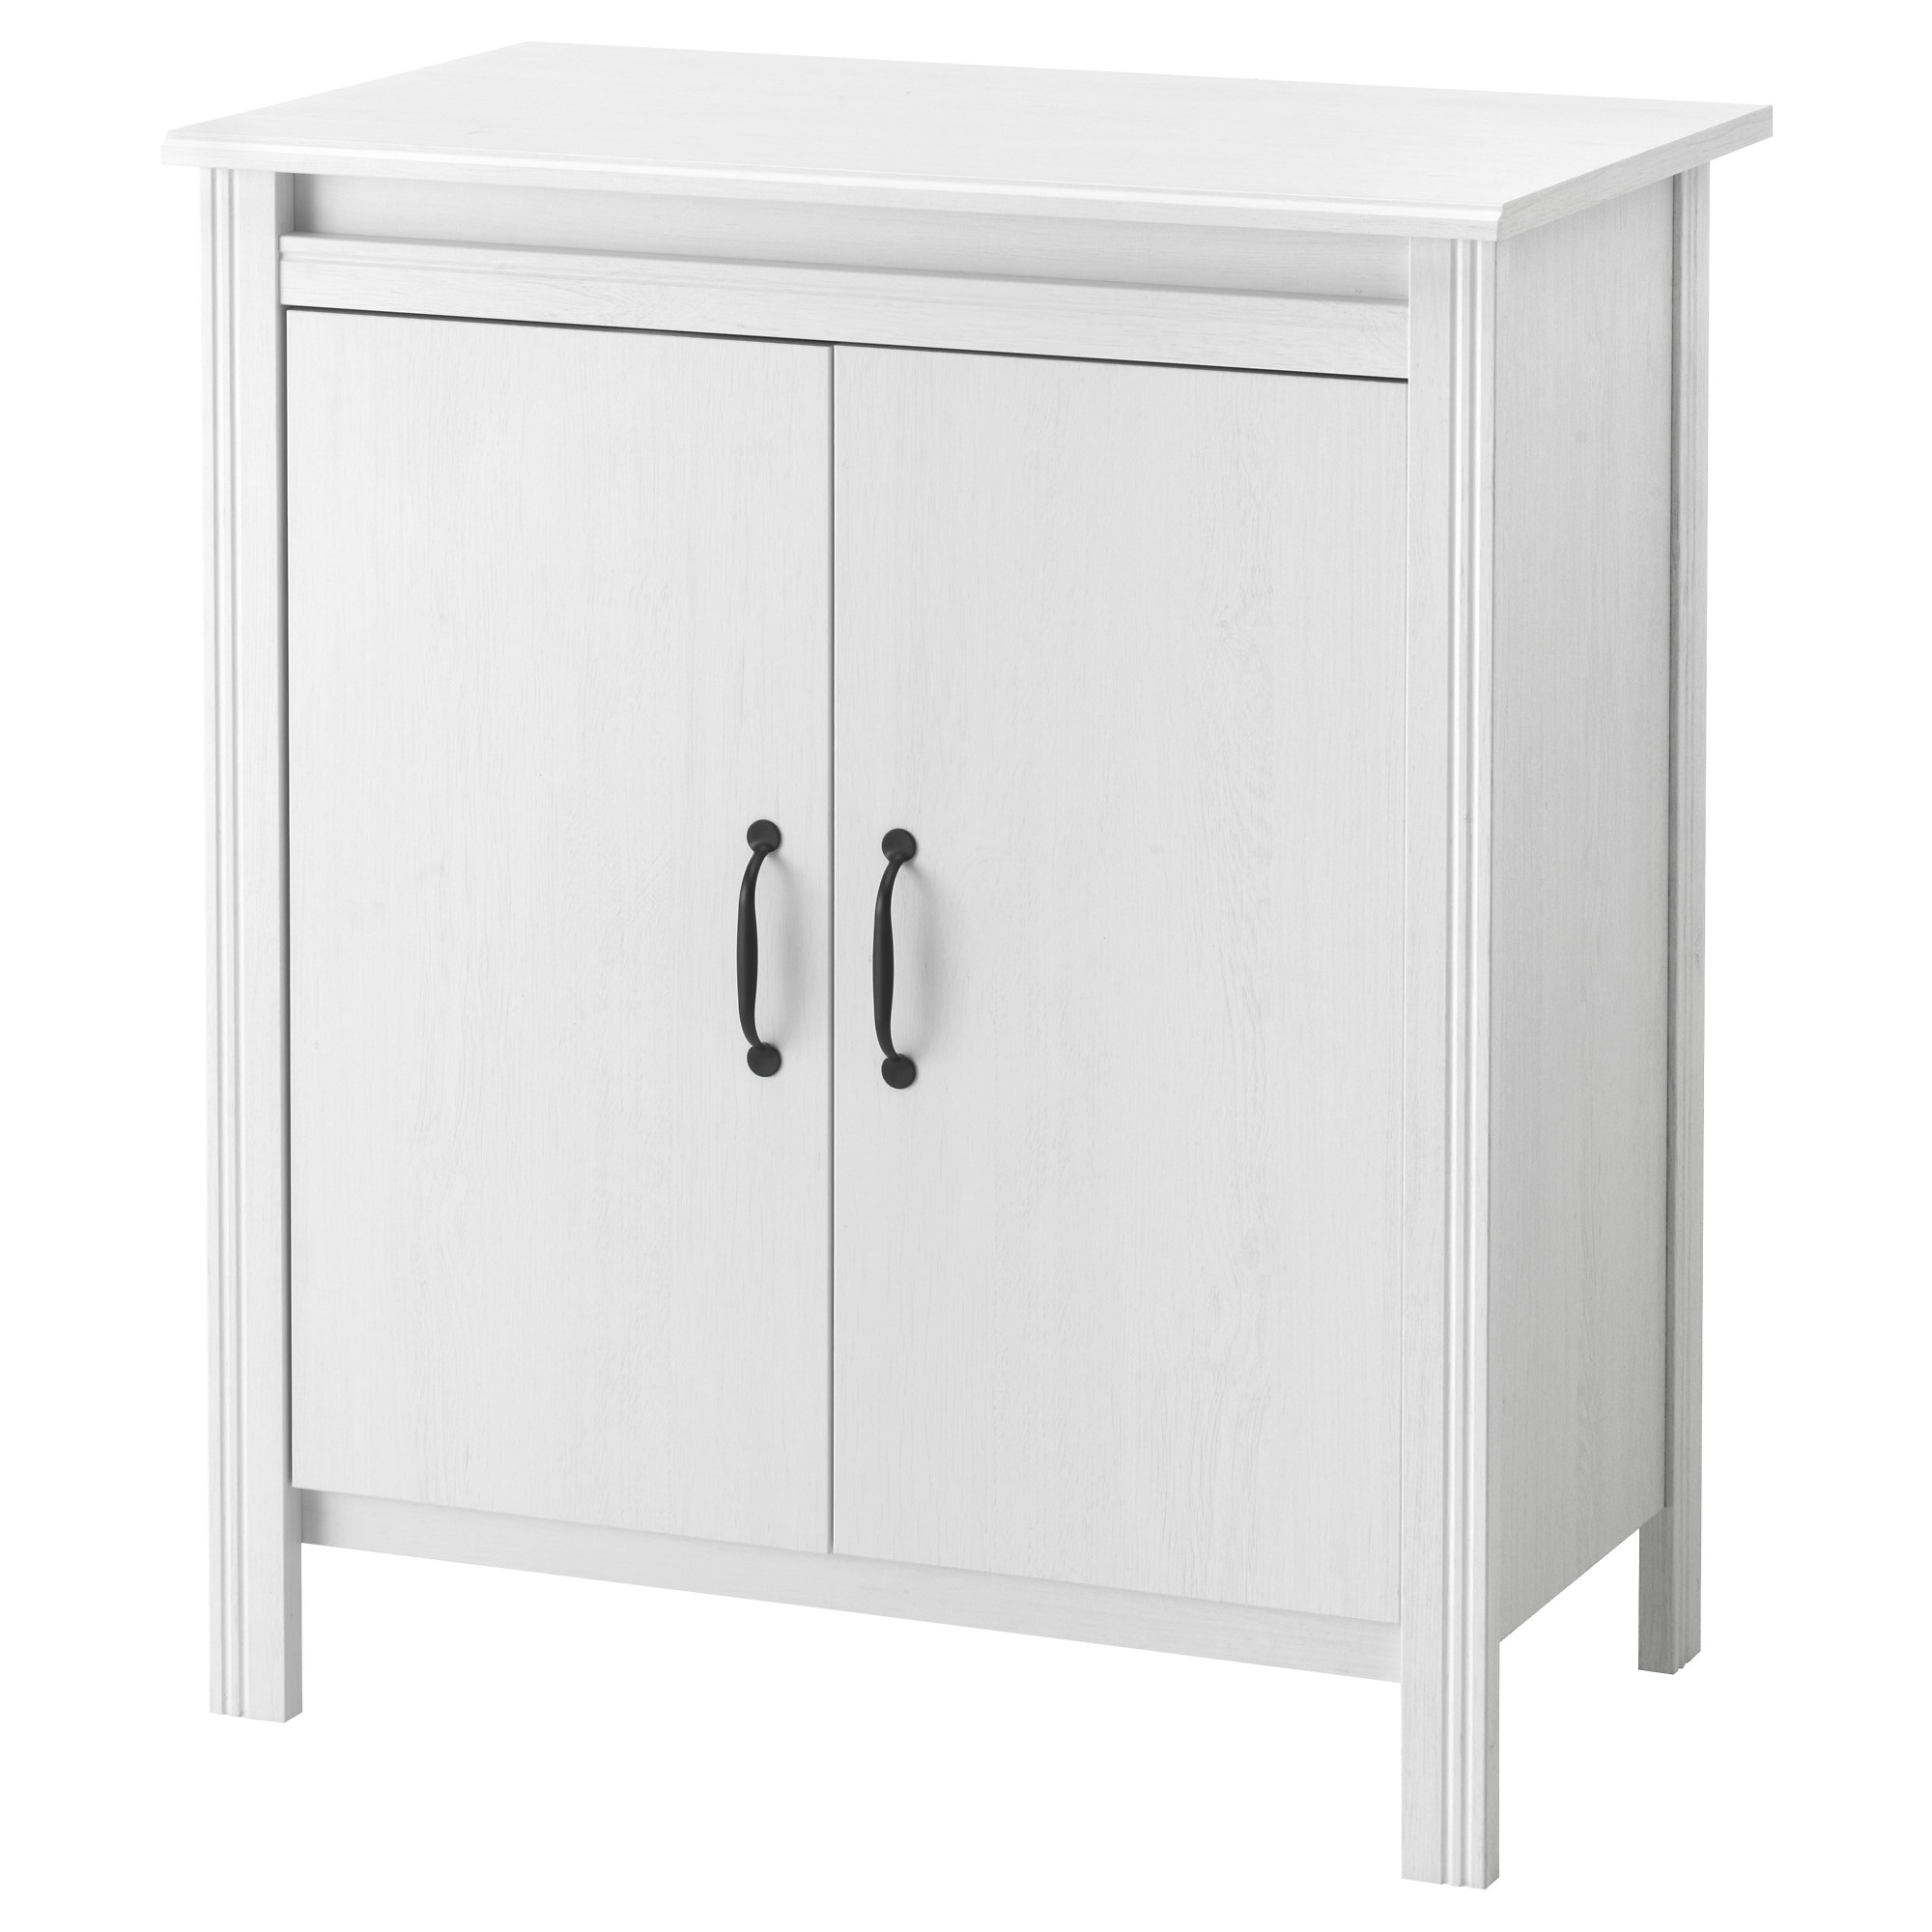 Kitchen cabinets 50cm depth - Brusali Cabinet With Doors White Width 31 1 2 Depth 18